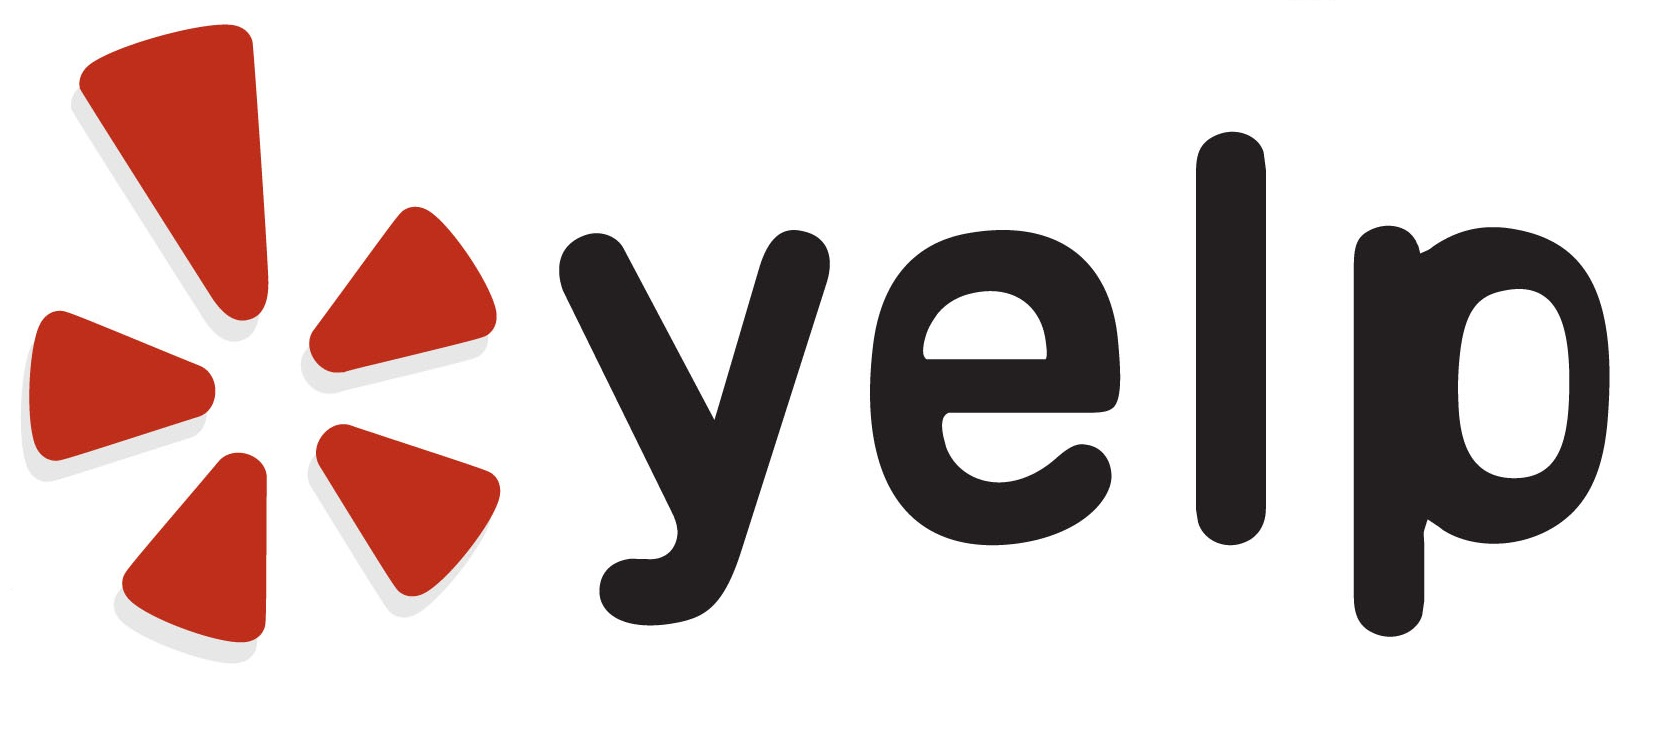 How to Get your Business on Yelp | Promodo online marketing ...